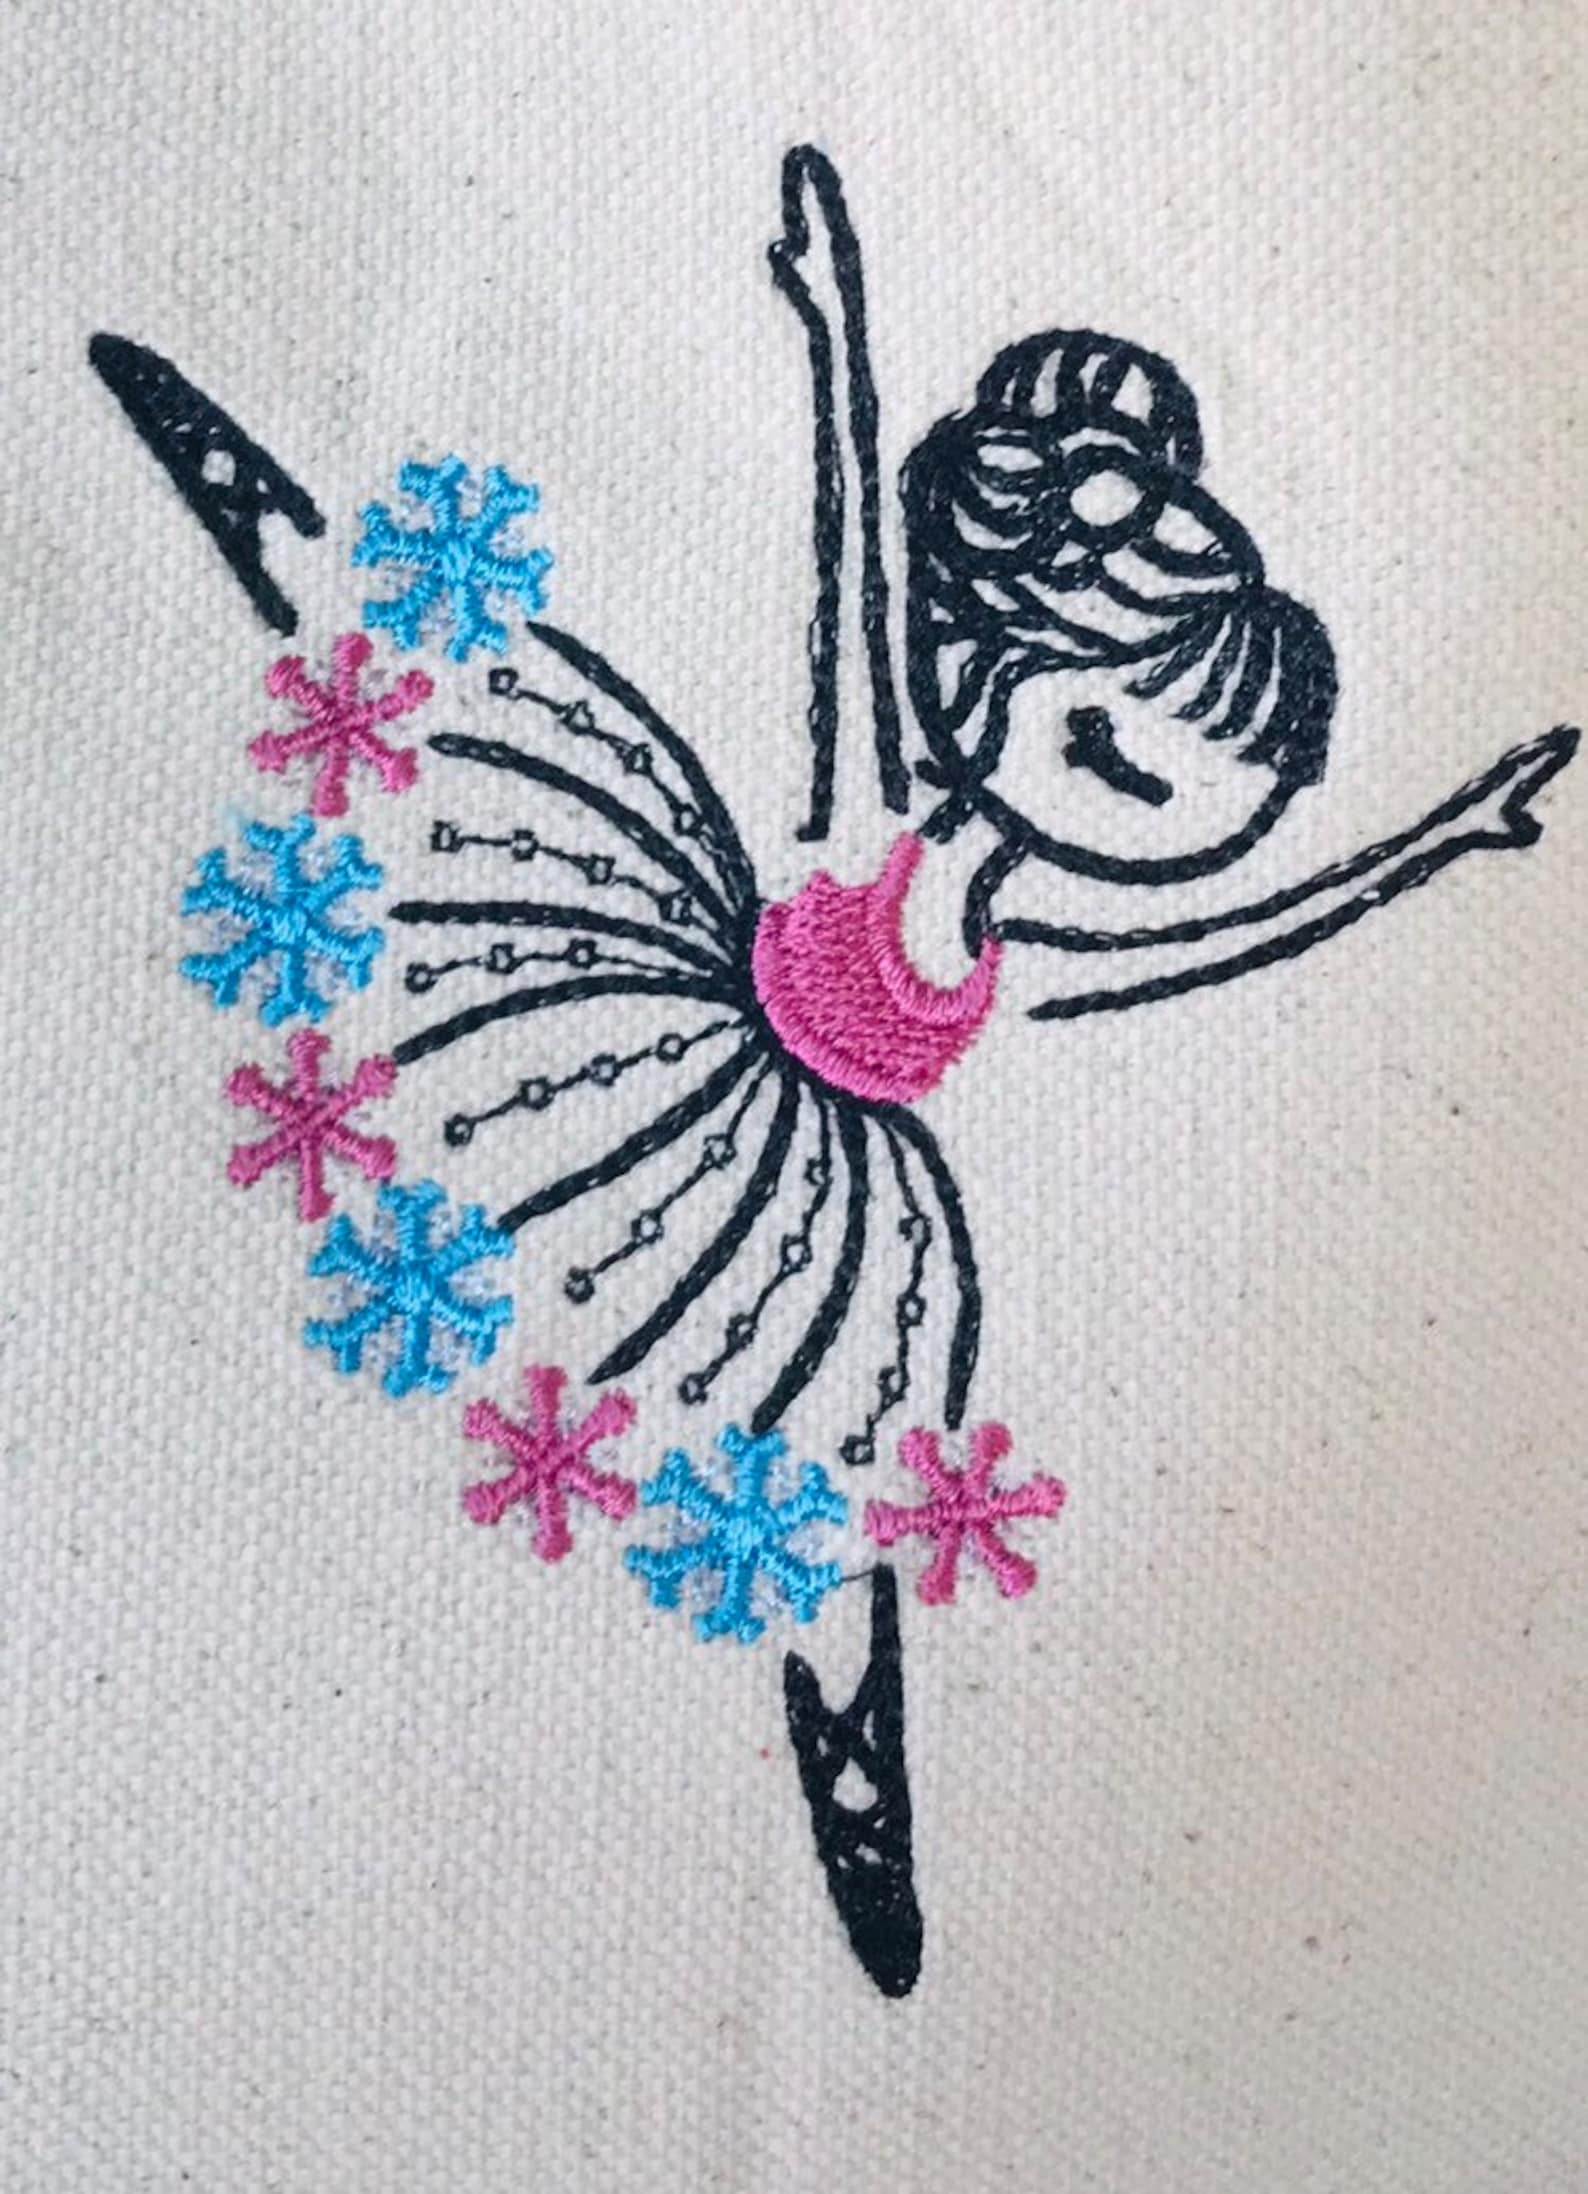 dance bag, ballet bag, girls birthday gift, ballerina tote bag, embroidered easter basket, flower tutu,, snowflake ballerina